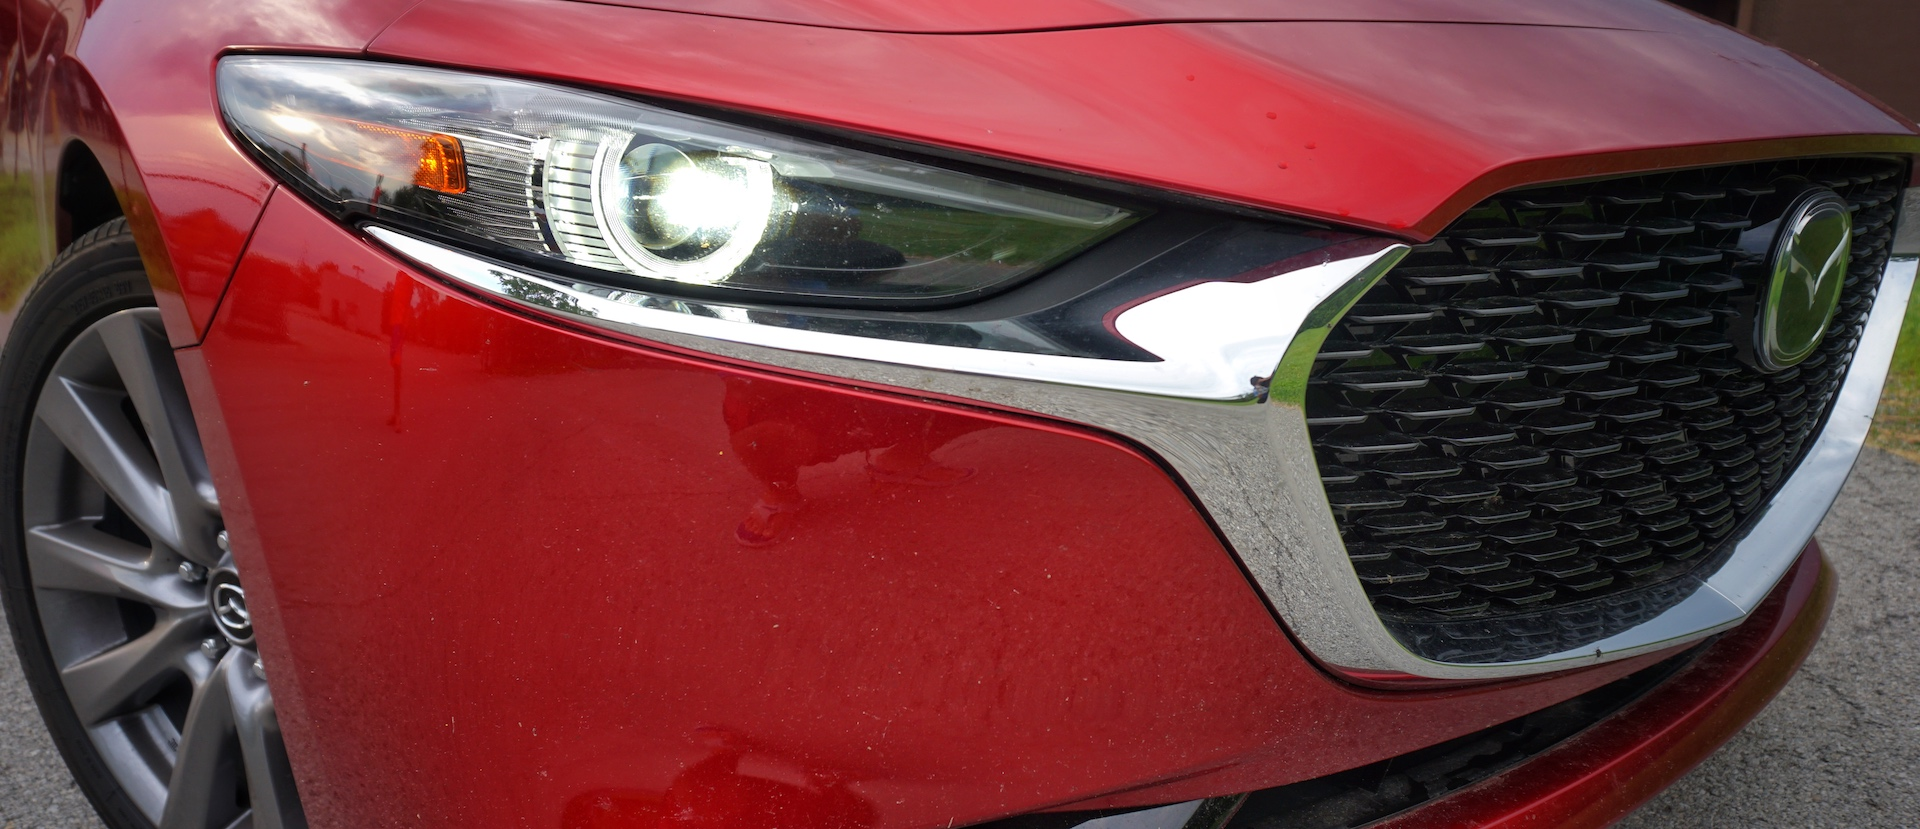 2019 Mazda3 Sedan Review: Stealing BMW's Lunch in a $30,000 Compact